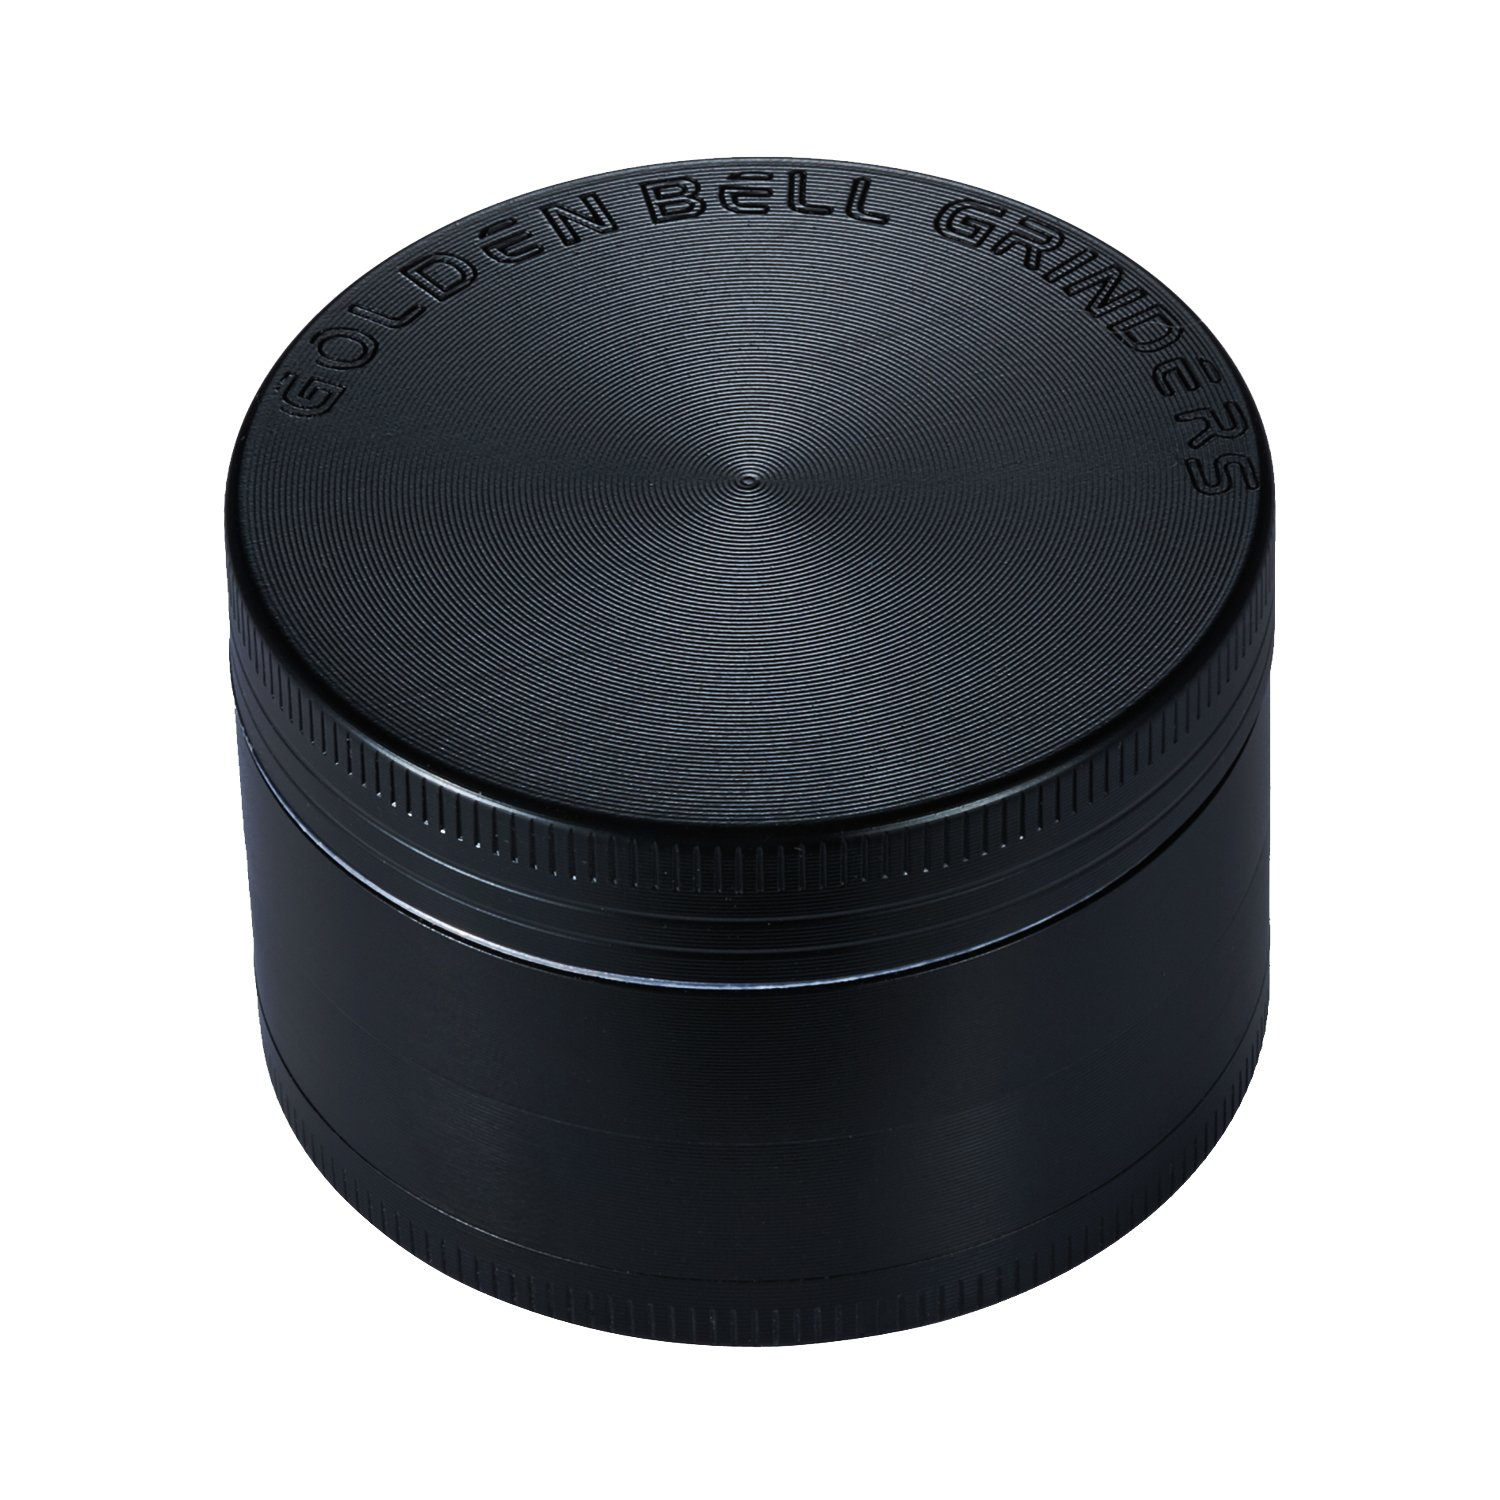 Golden Bell 4 Piece Spice Herb Grinder, 2-Inch - Black